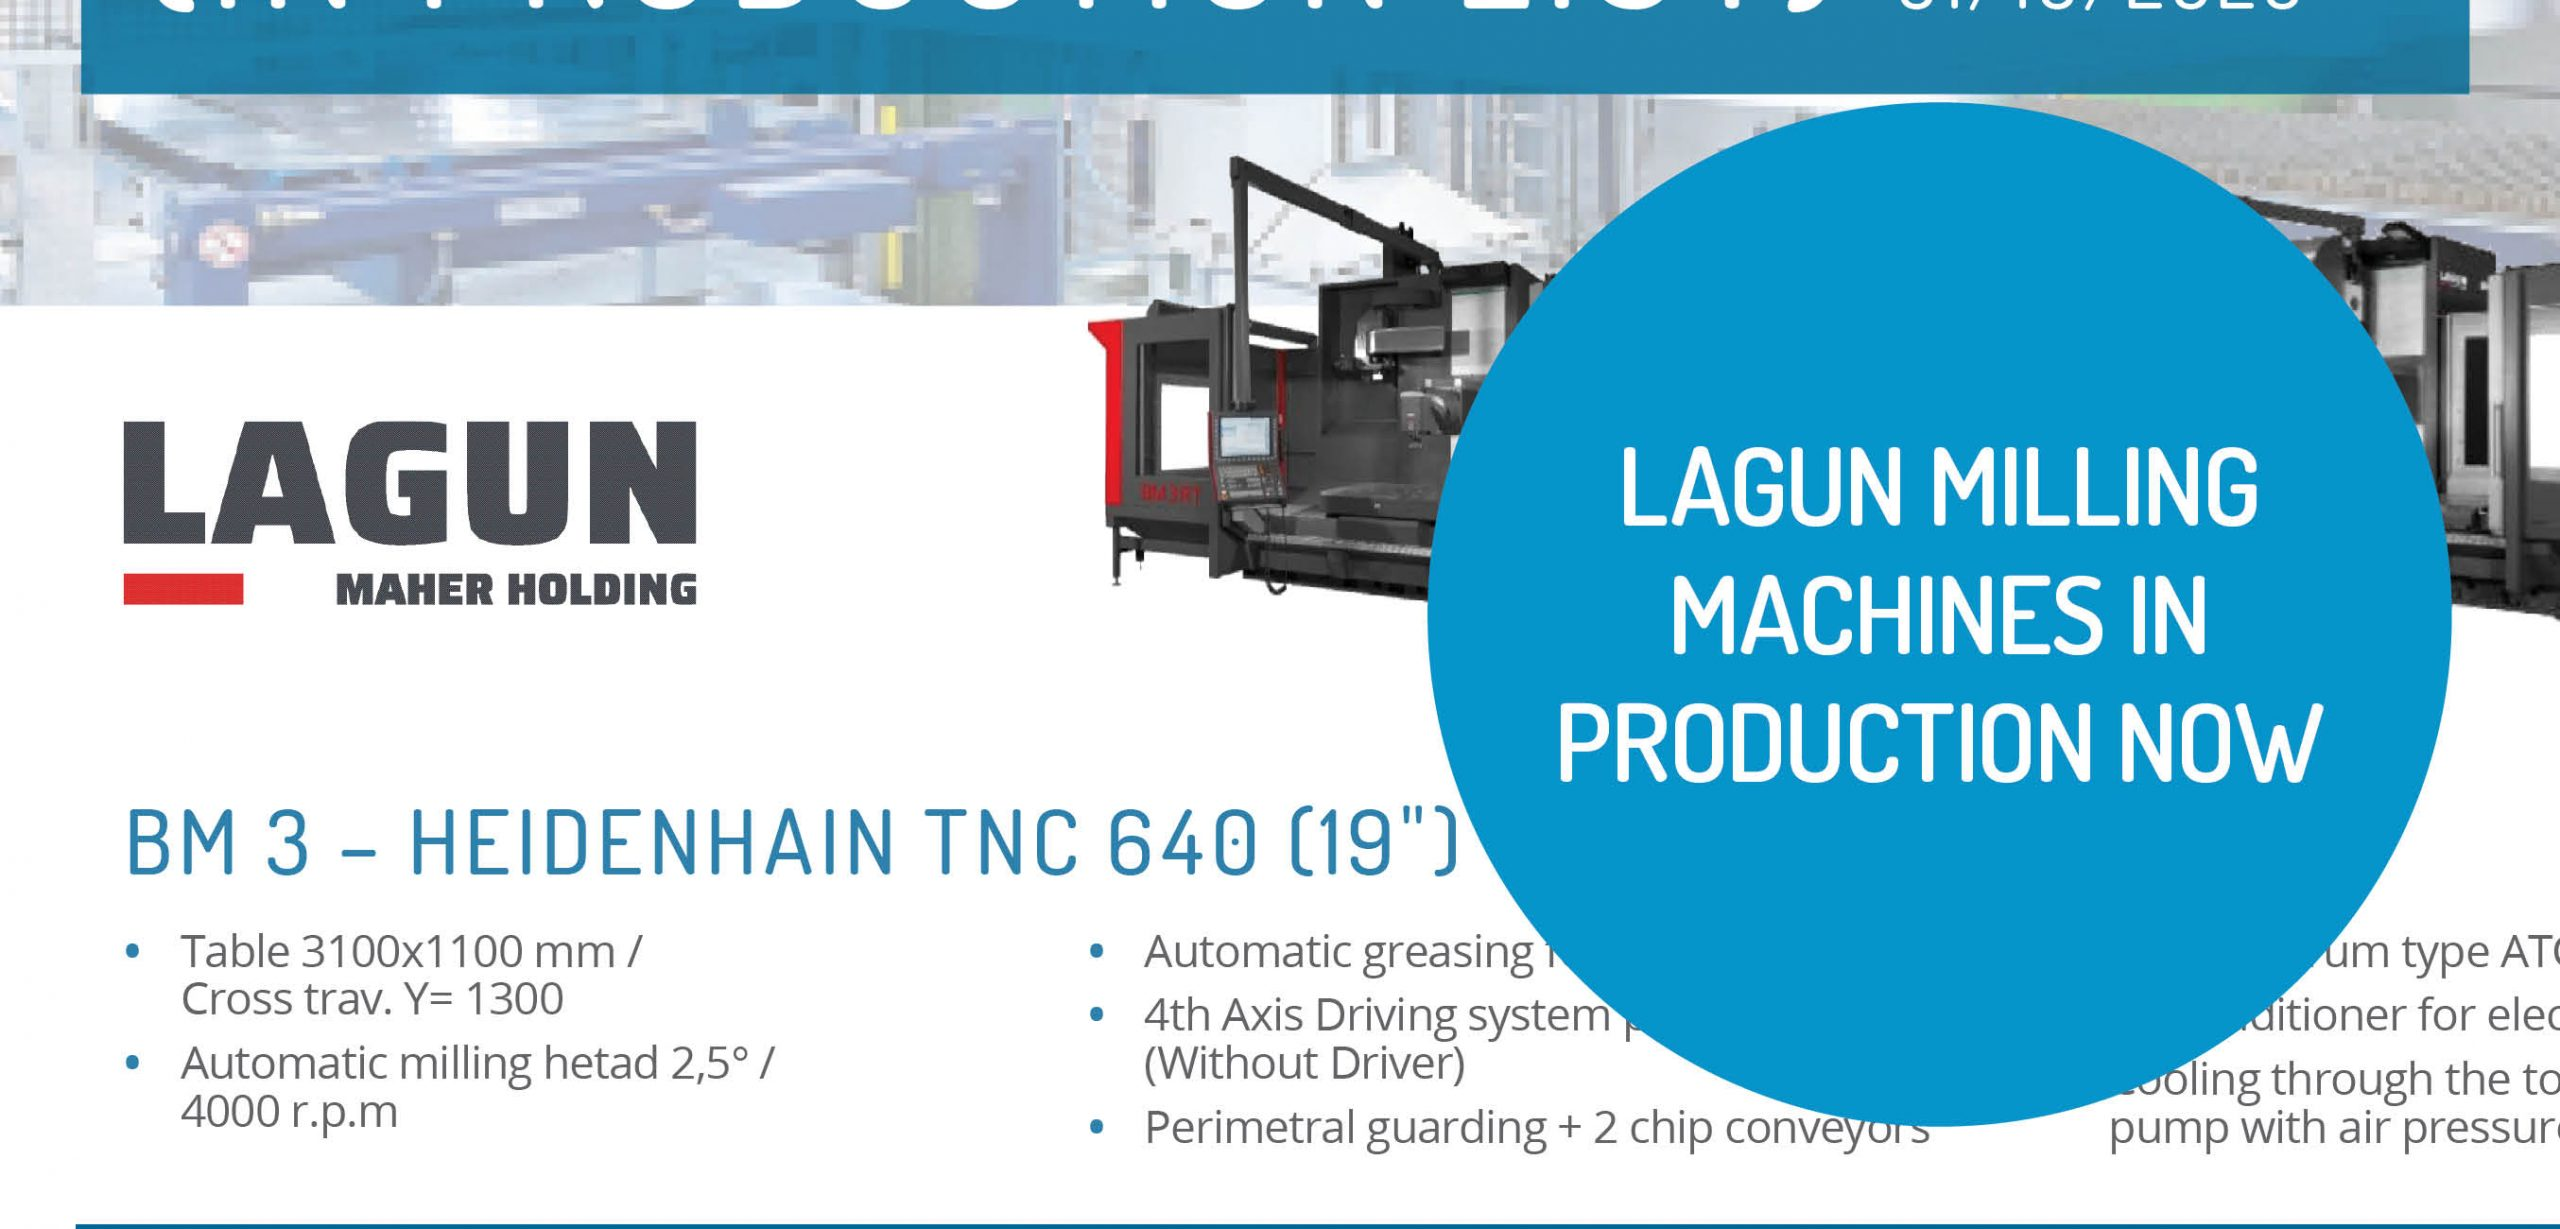 Lagun Milling Machines In Production